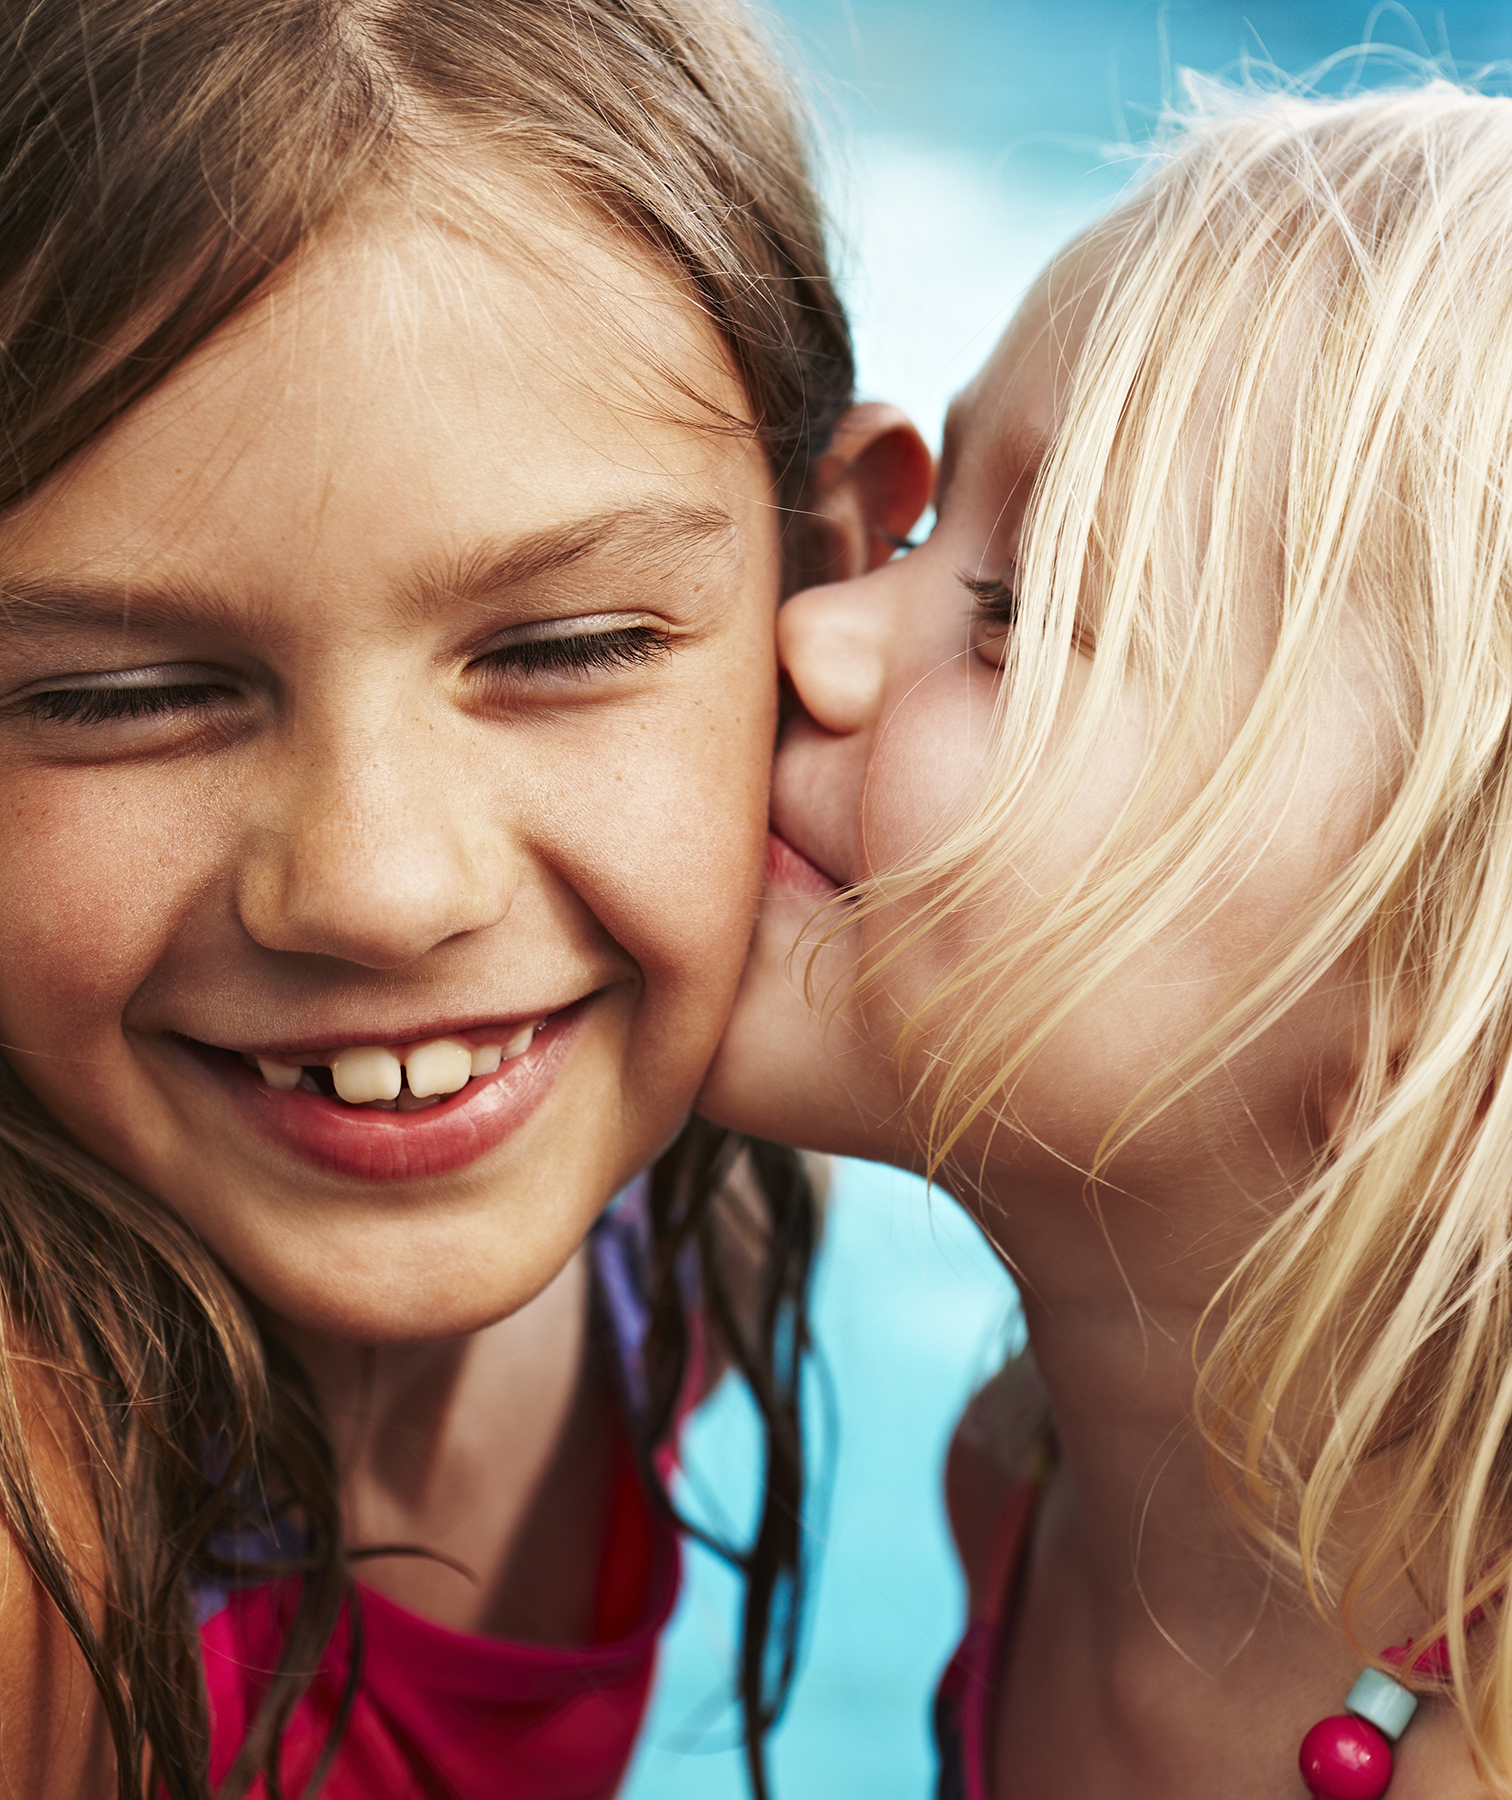 Sister kisses sister's cheek by the pool